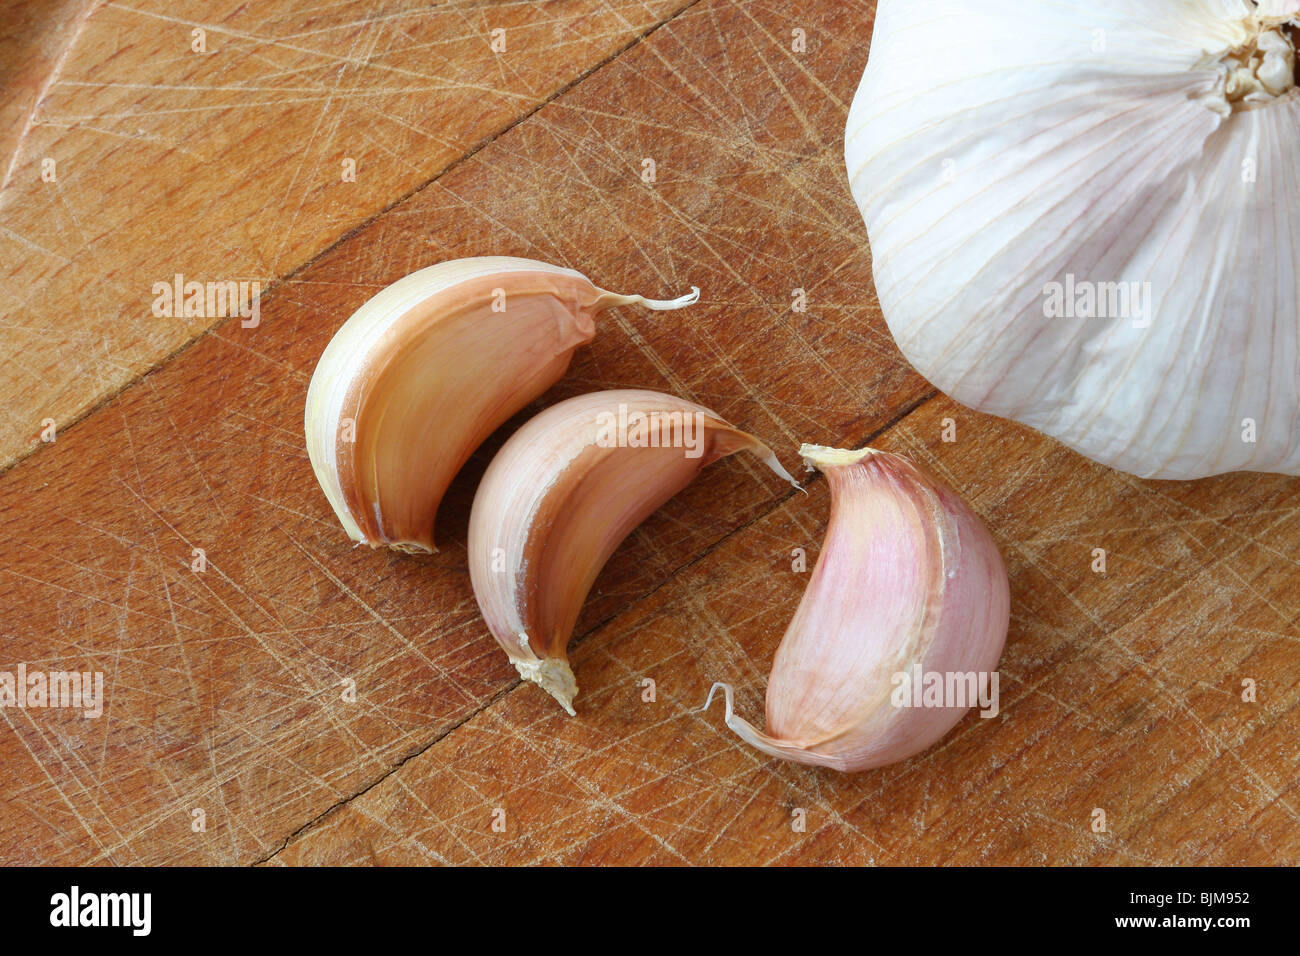 Garlic on cutting board - Stock Image